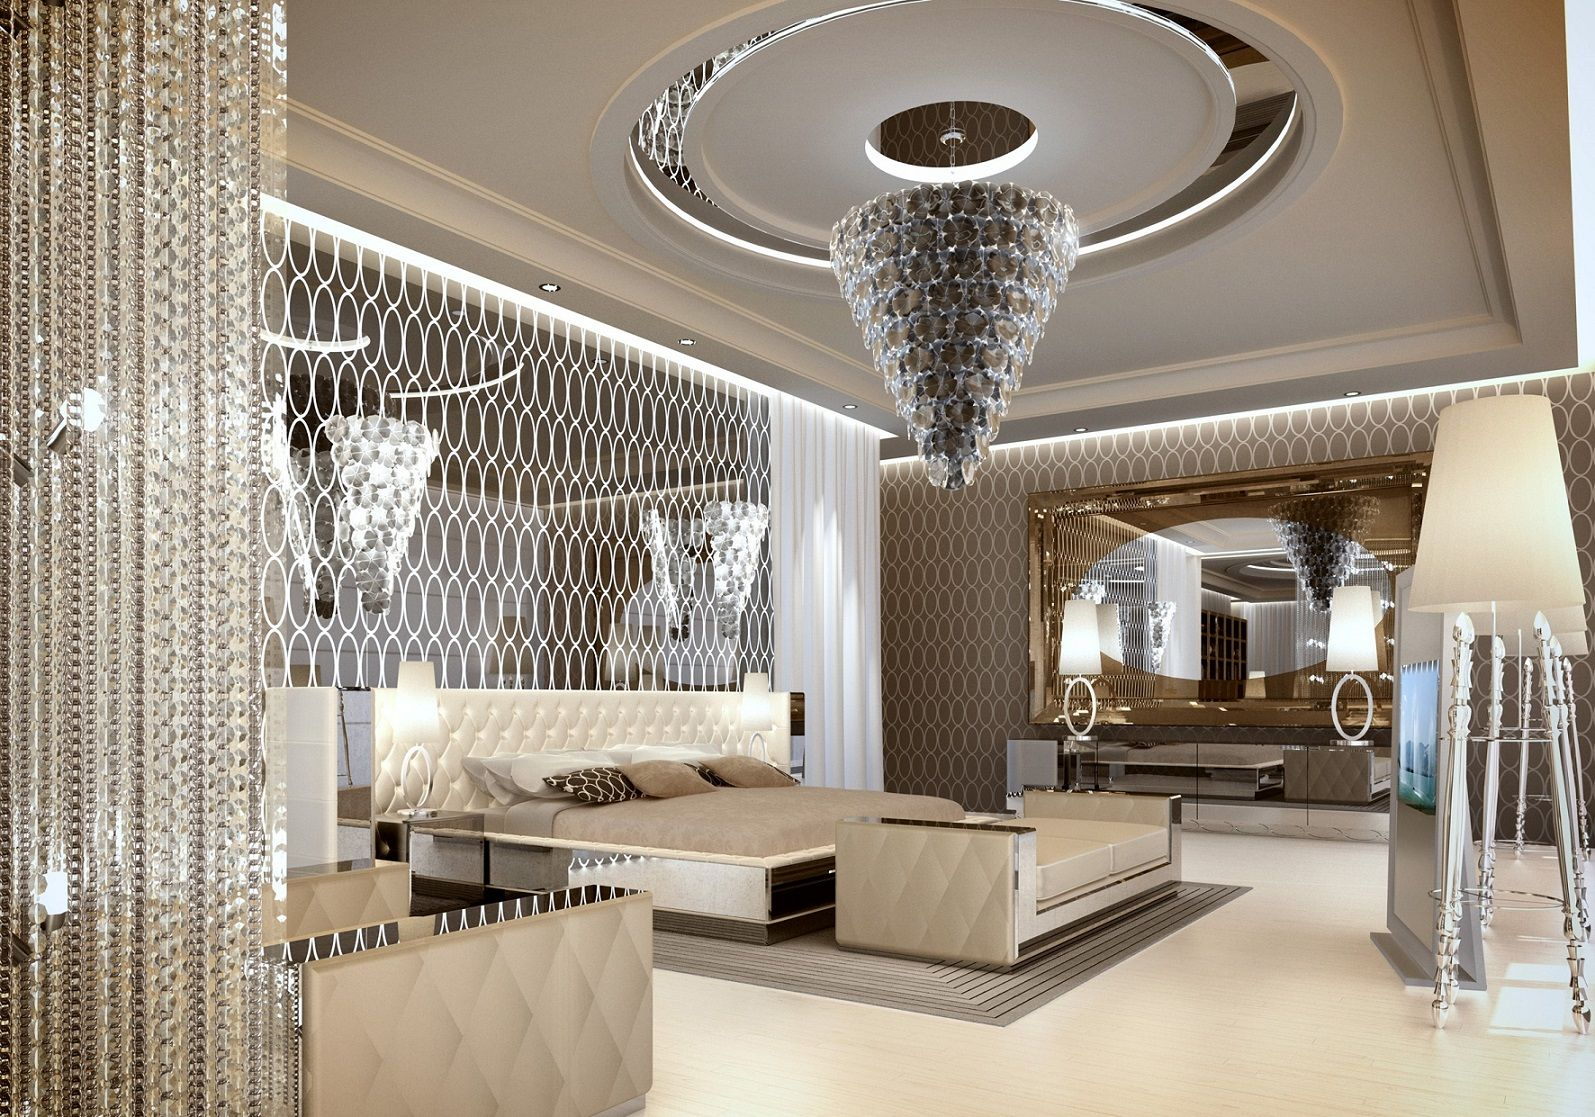 Ultra high end hotel signature collection designer for A signature hollywood salon